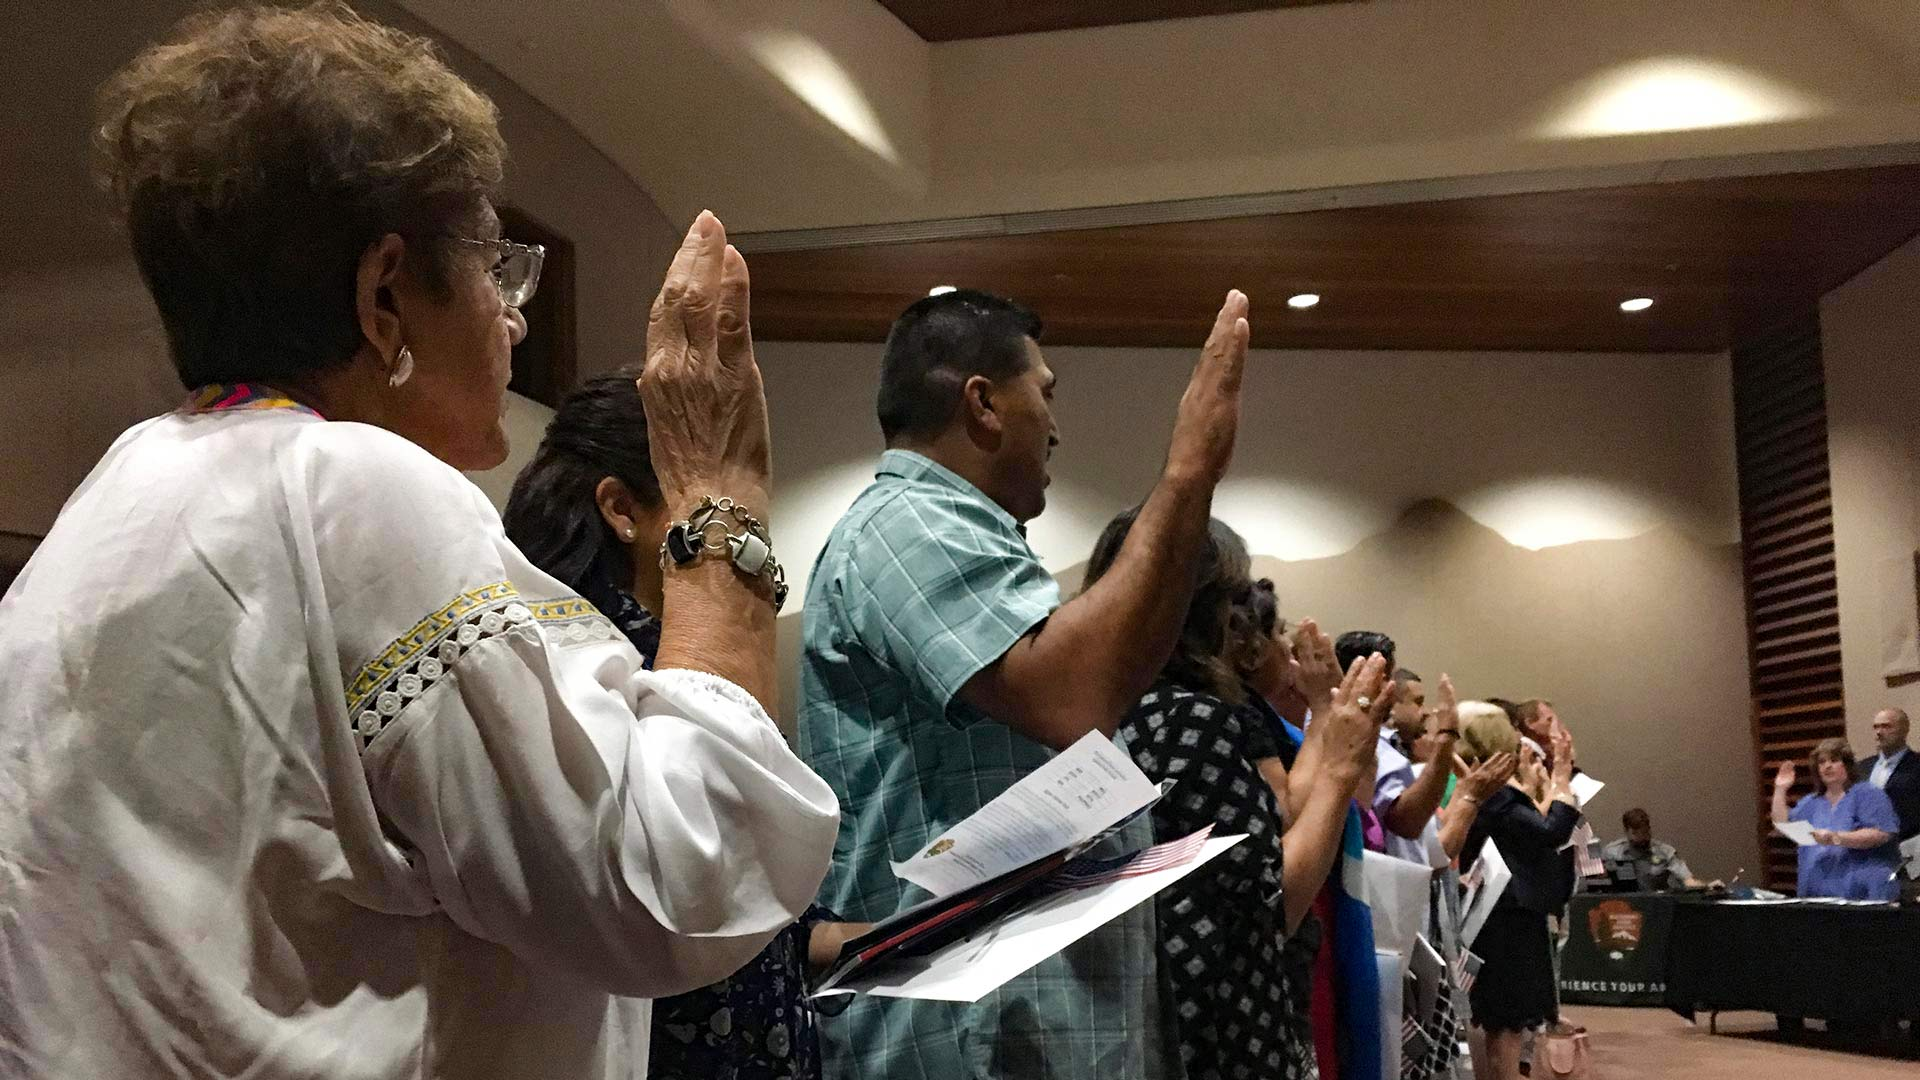 New citizens take the oath of allegiance at Saguaro National Park at the annual Independence Day citizenship ceremony, July 4, 2018.